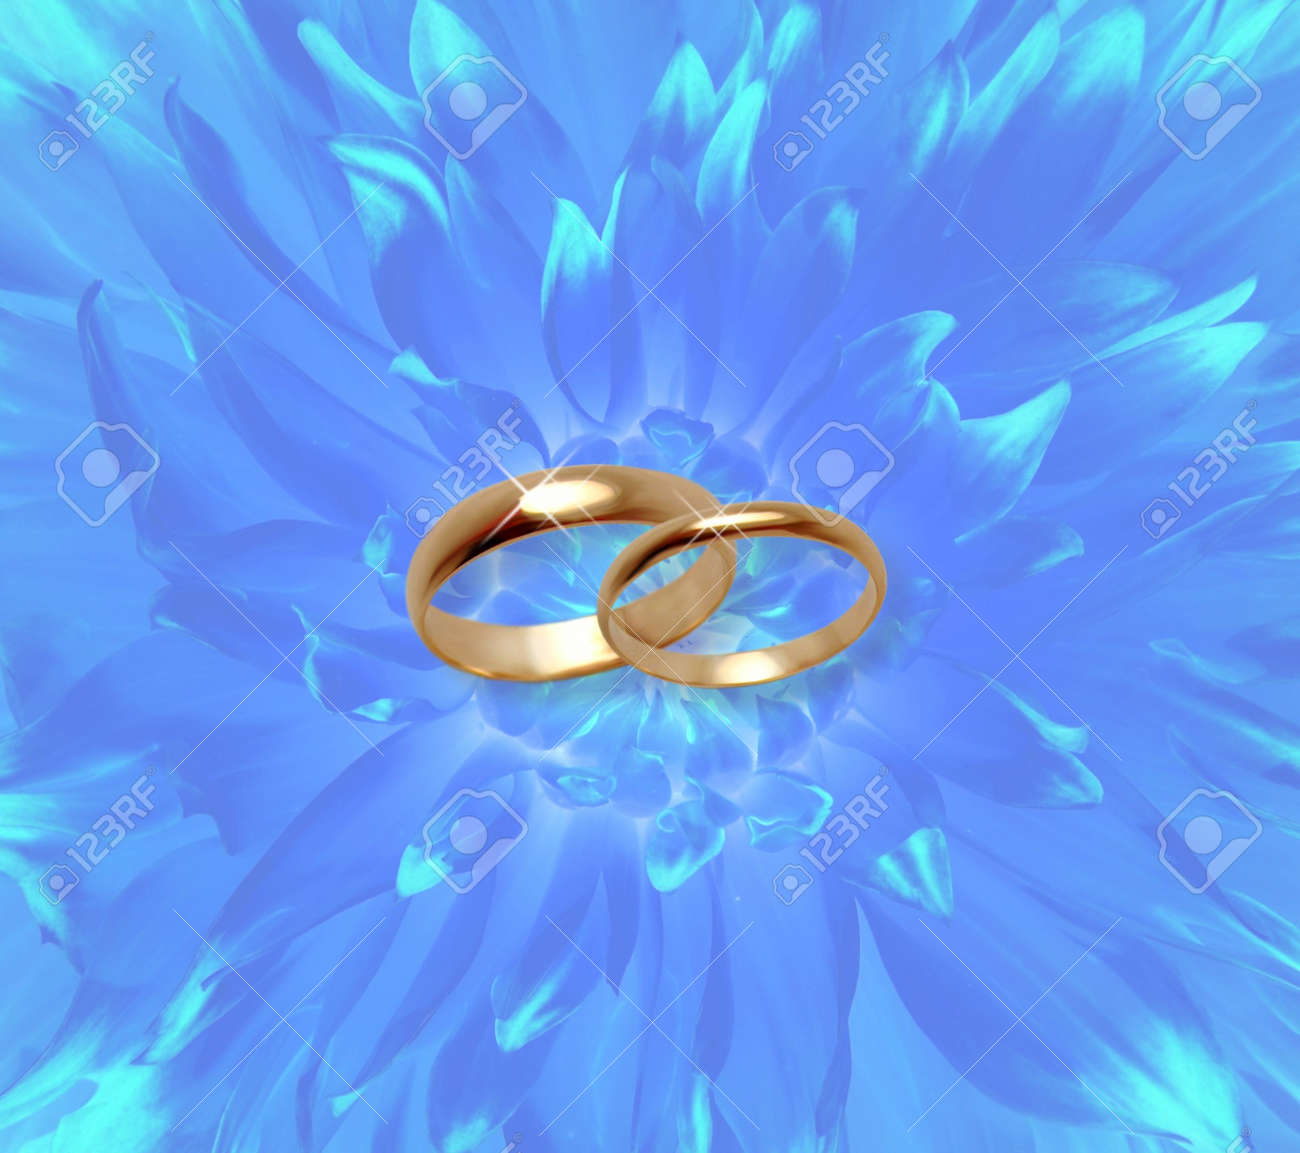 photo blue fine flowers background with wedding rings blue wedding rings Blue fine flowers background with wedding rings Stock Photo